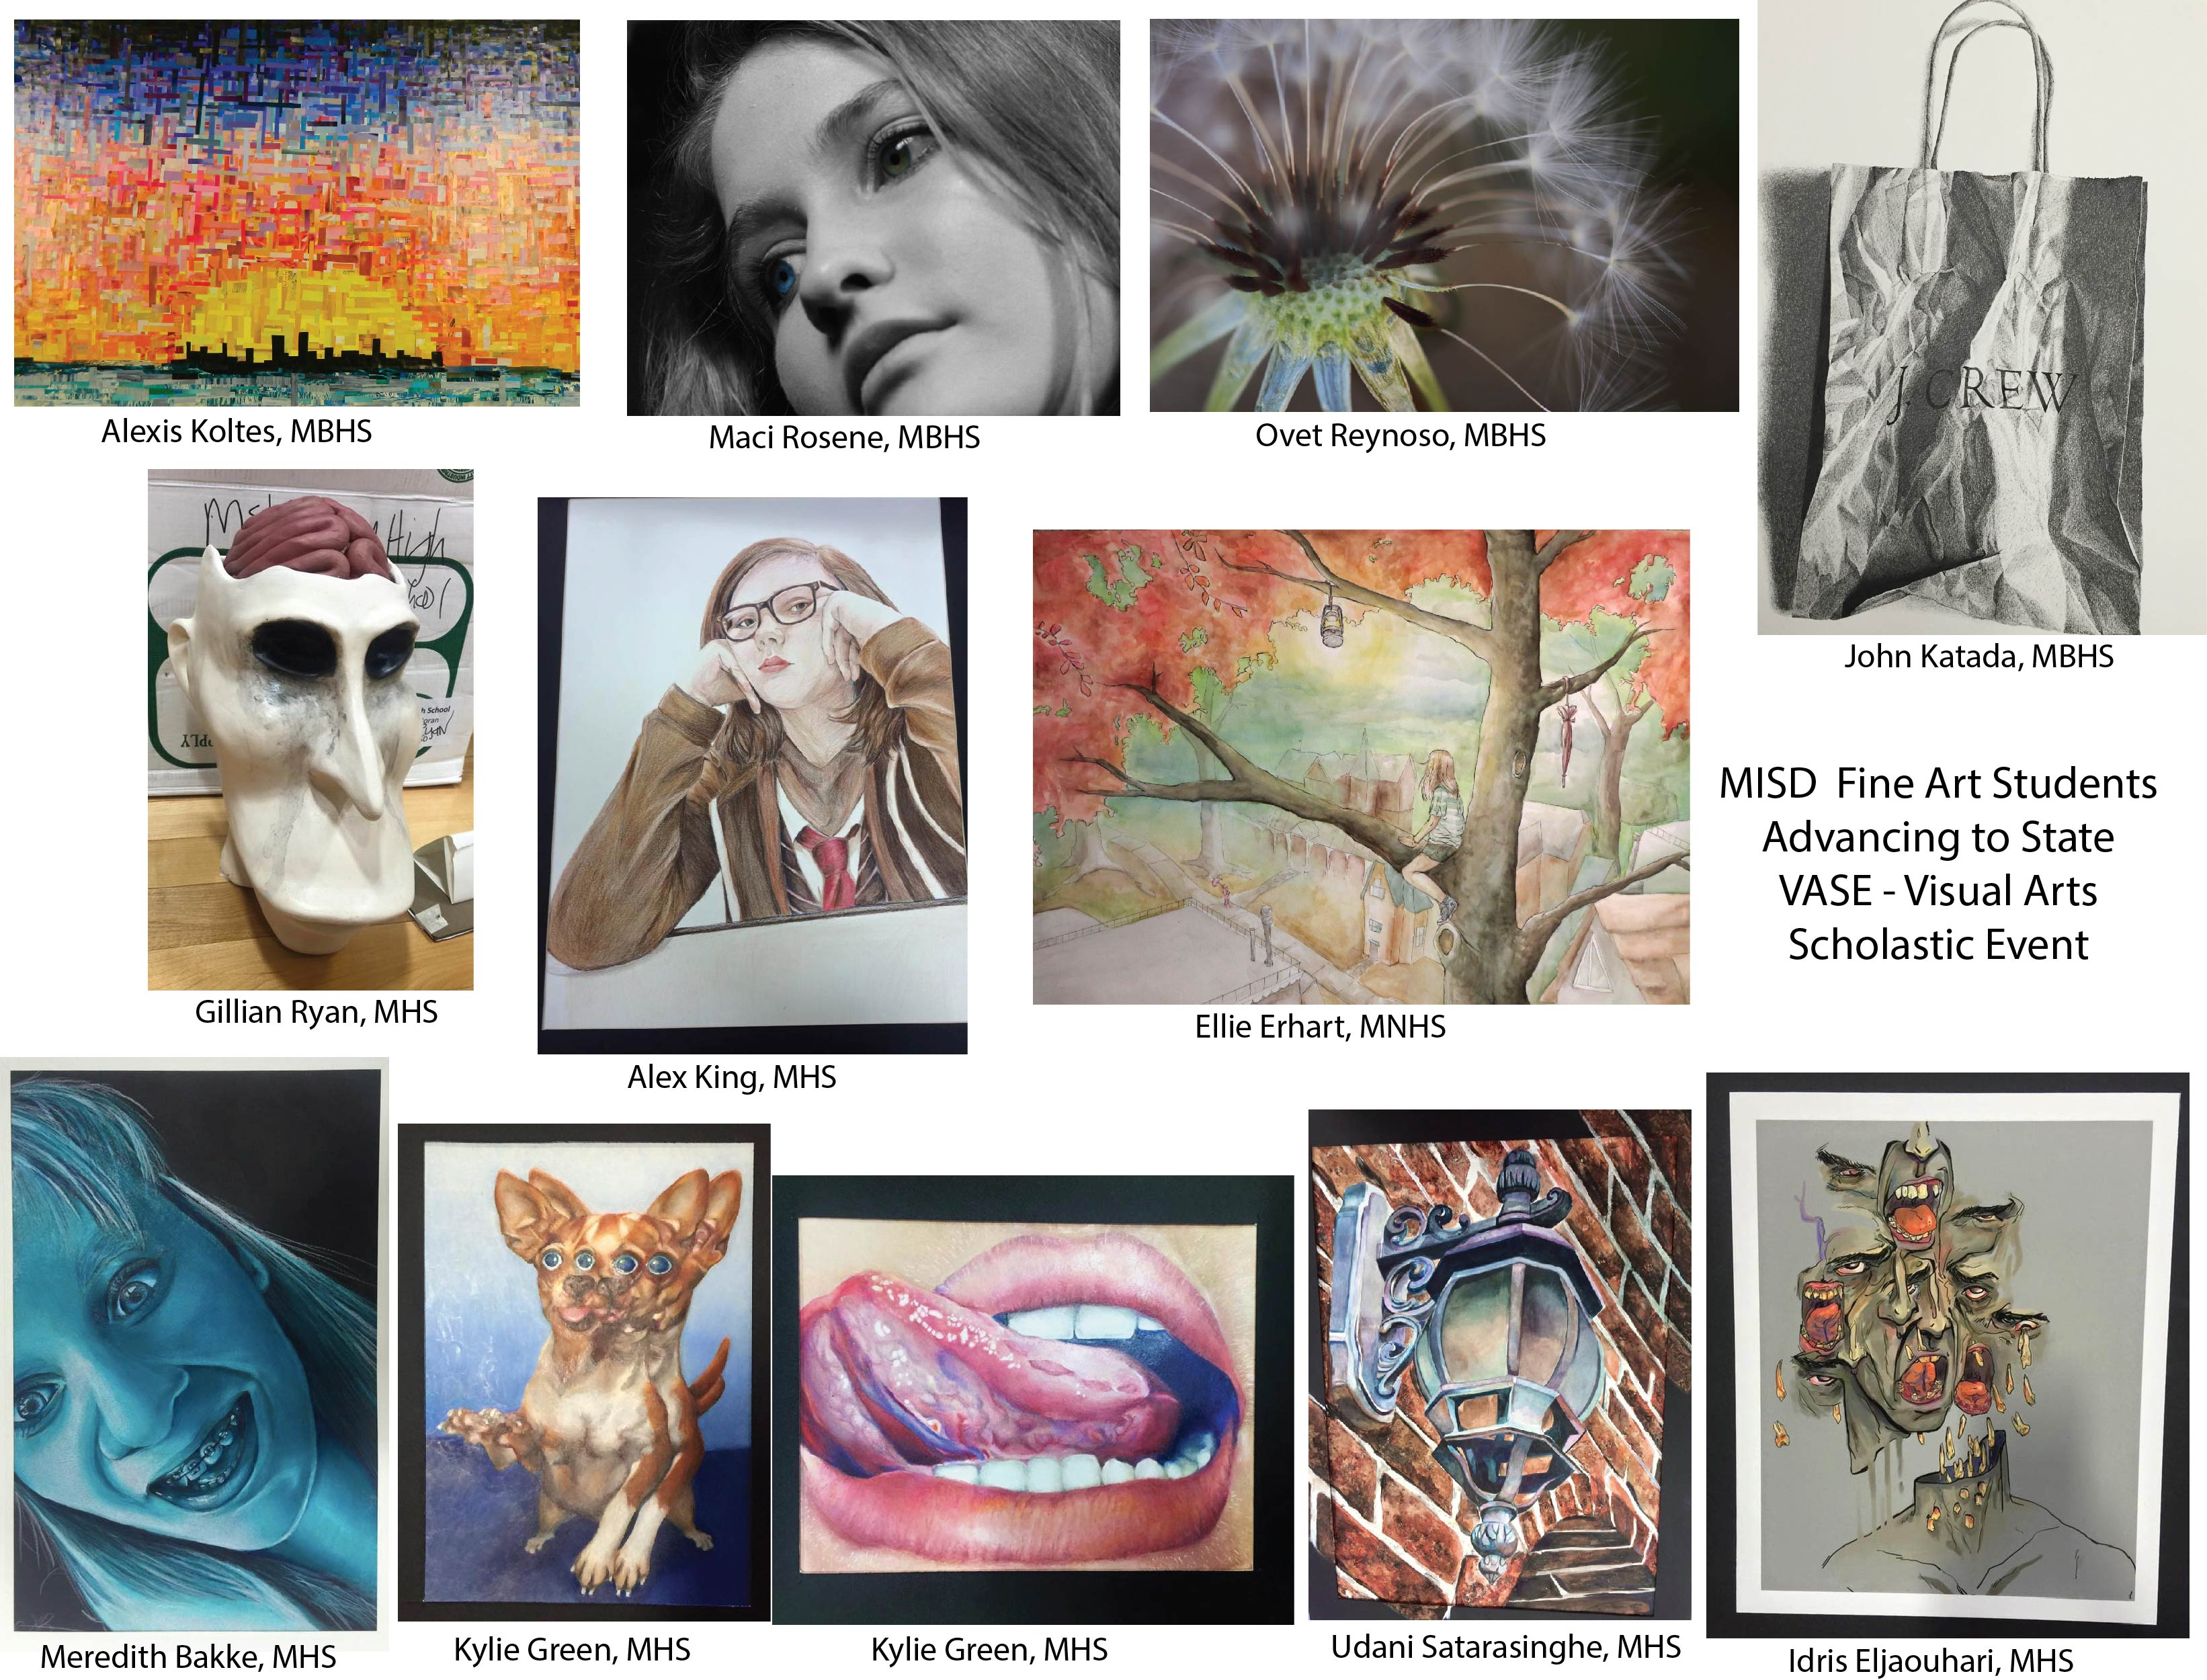 Misd high school artists advance to state vase competition vasestateentries reviewsmspy